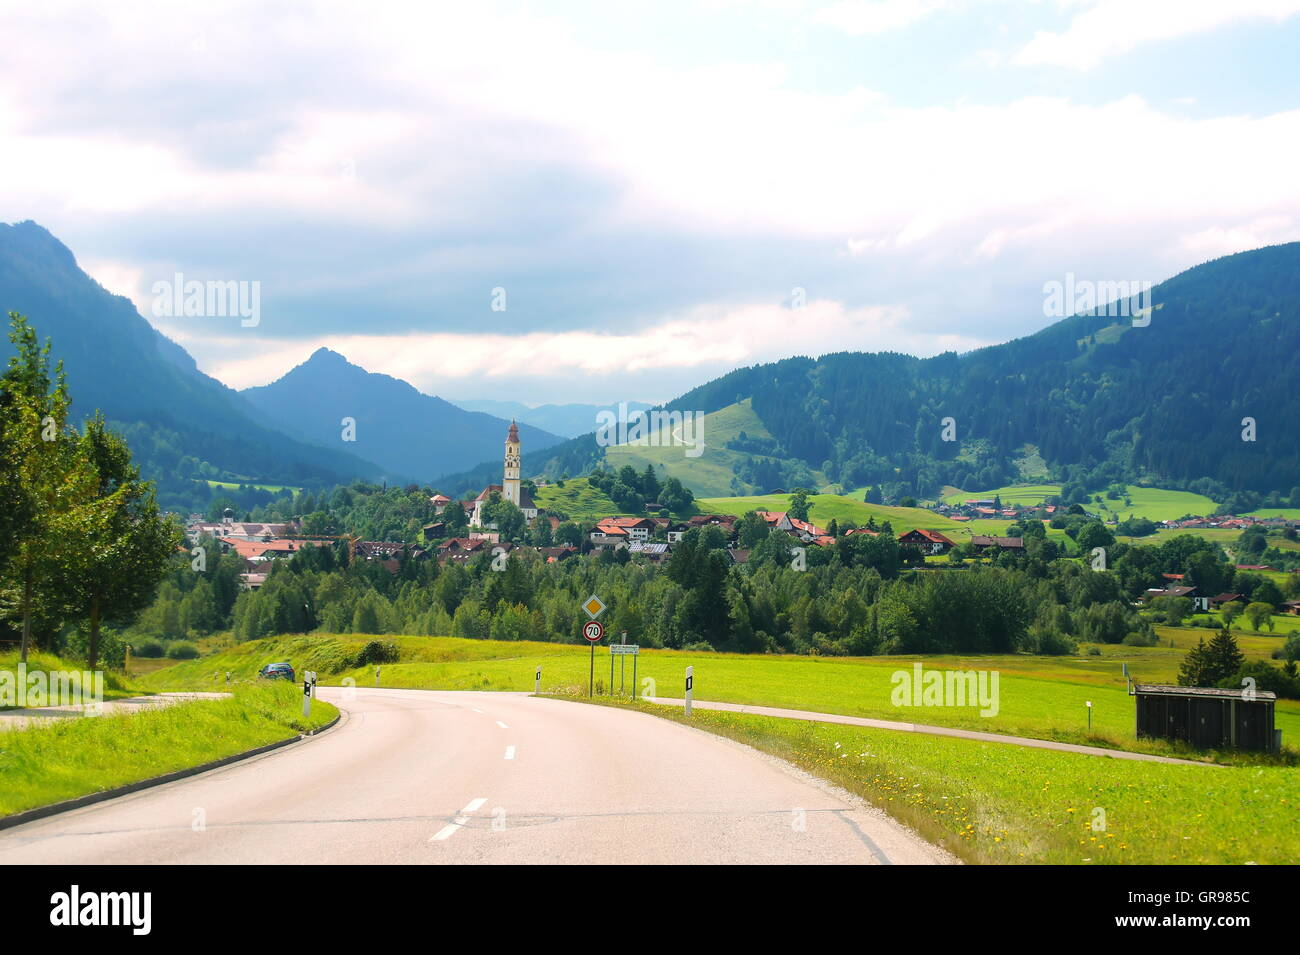 Street In The Allgaeu Southbound To Pfronten - Stock Image